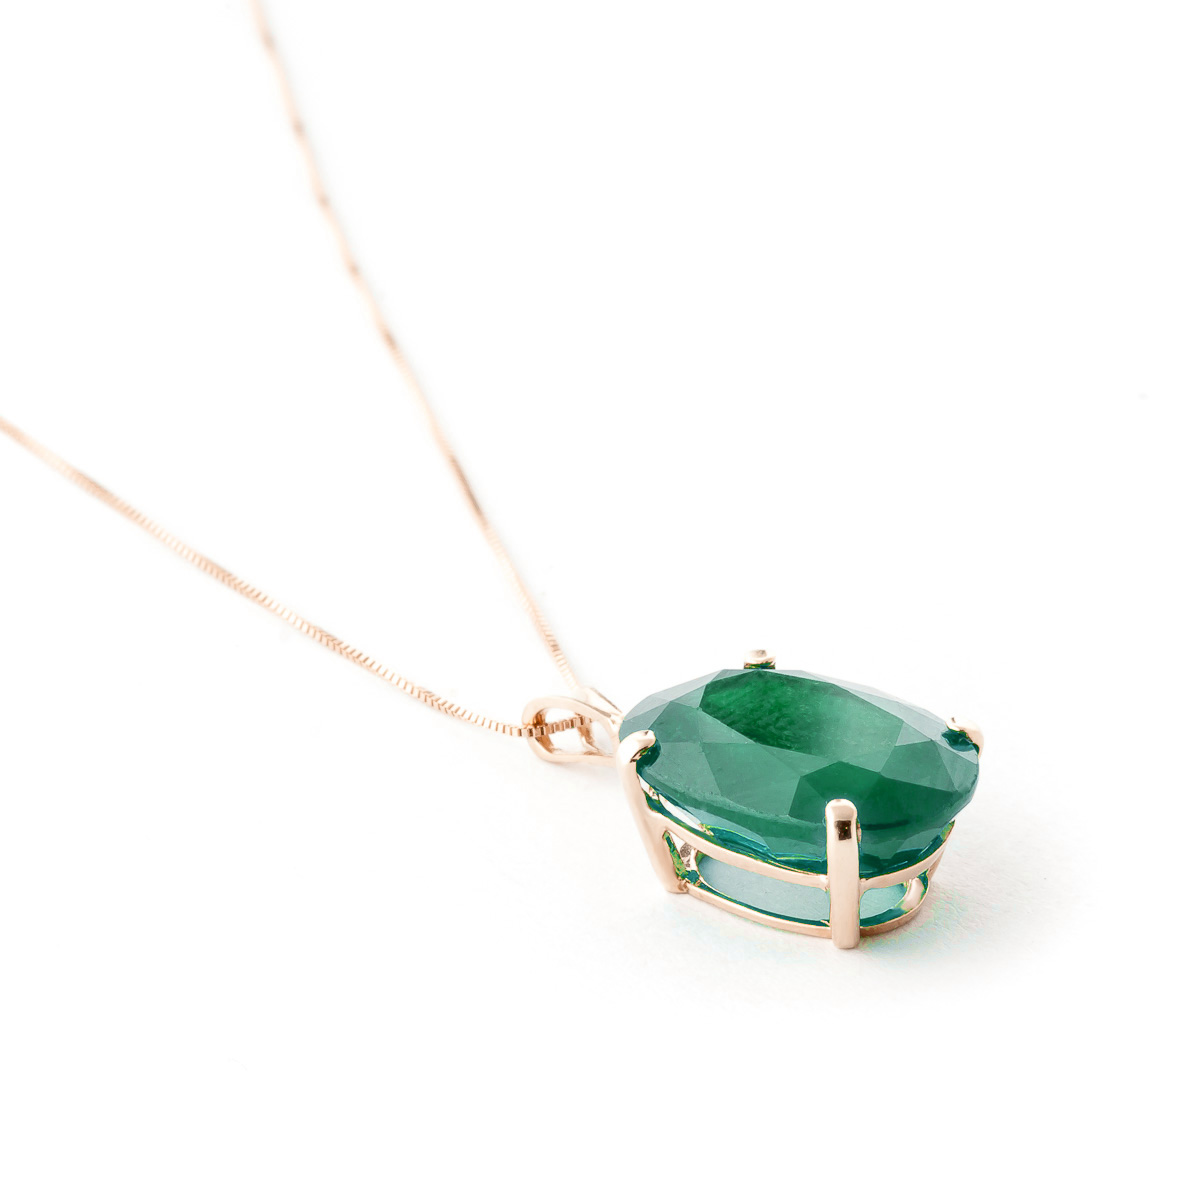 Oval Cut Emerald Pendant Necklace 6.5ct in 9ct Rose Gold